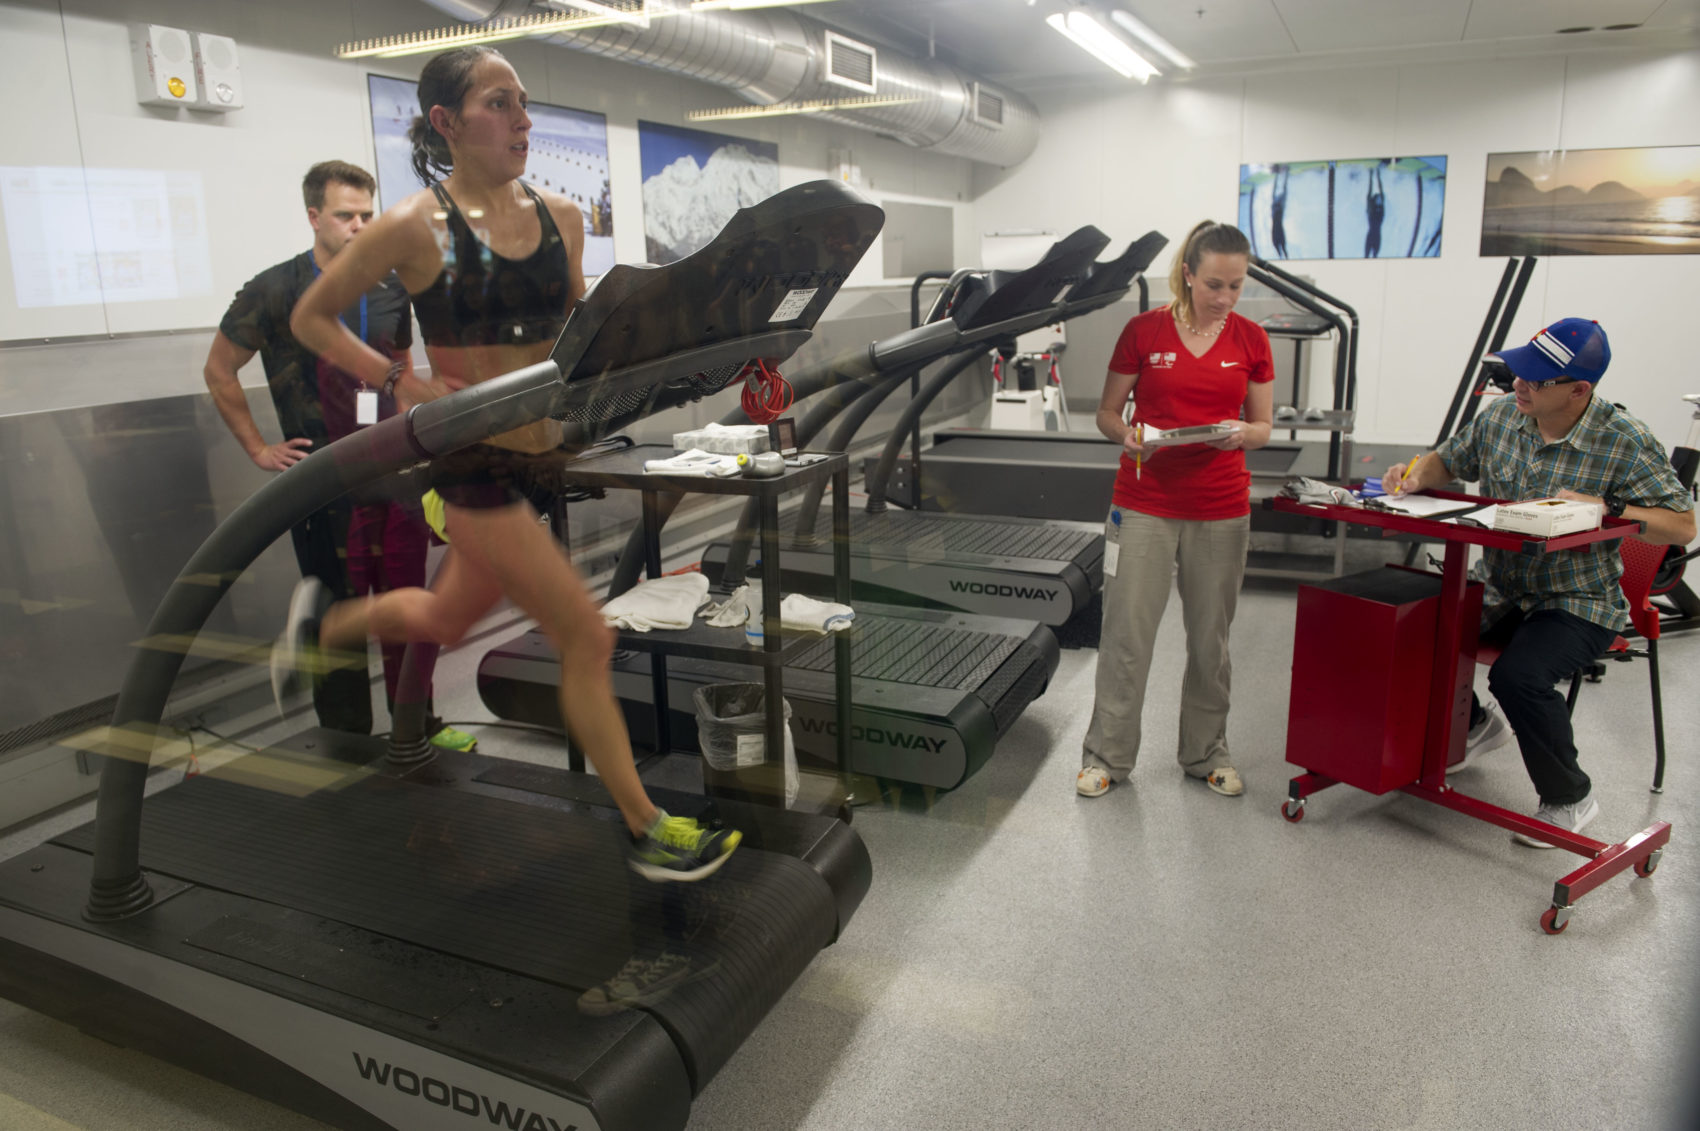 Linden runs inside the High-Altitude Training Center in preparation for the 2016 Rio Olympic games. (Jason Connolly/AFP/Getty Images)